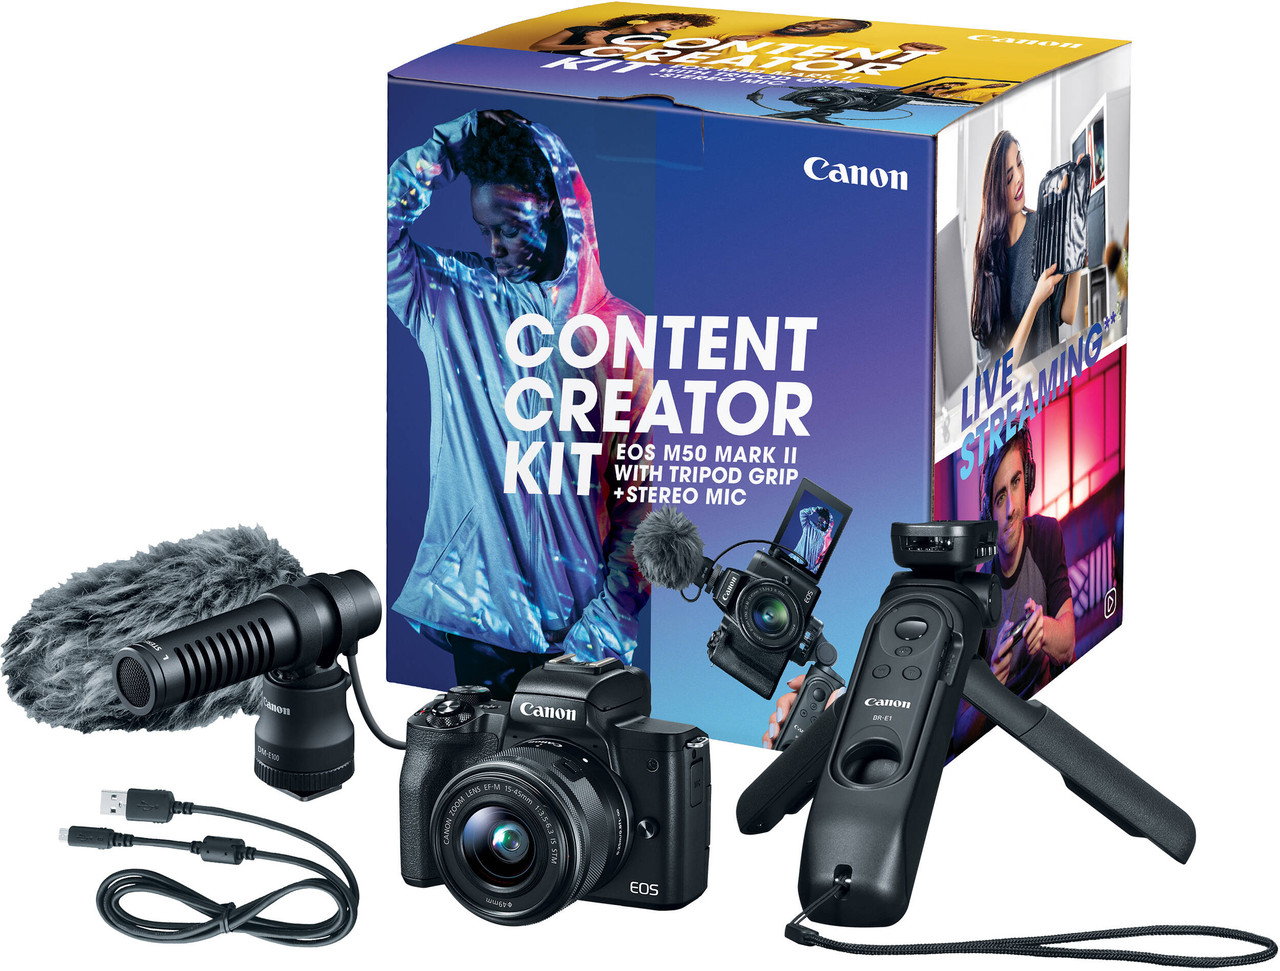 Canon M50 Mark II Mirrorless Camera with 15-45mm Lens Content Creator Kit